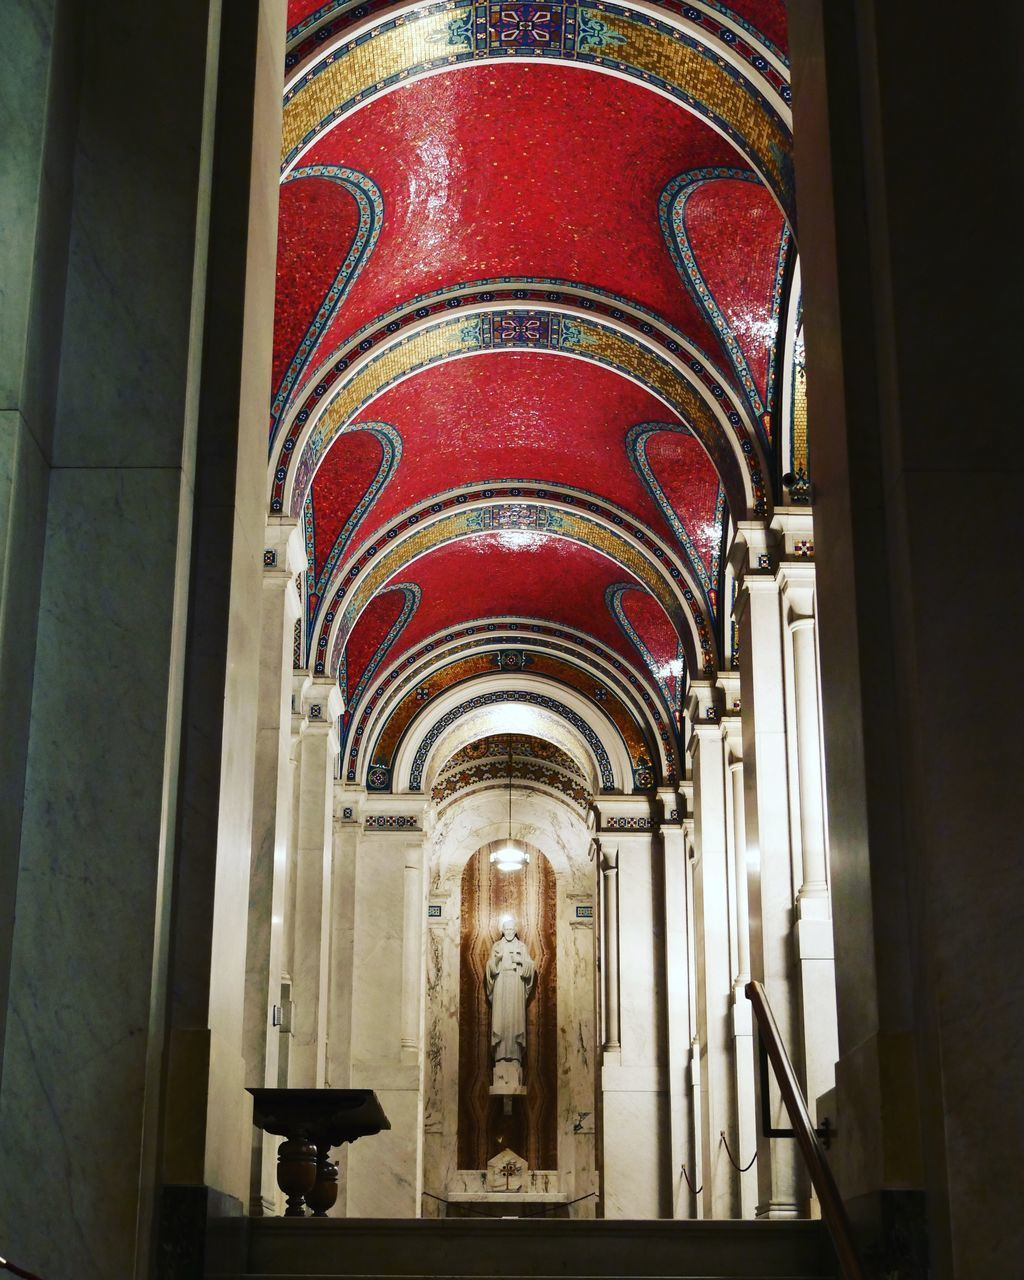 LOW ANGLE VIEW OF ARCHWAY IN HISTORIC BUILDING